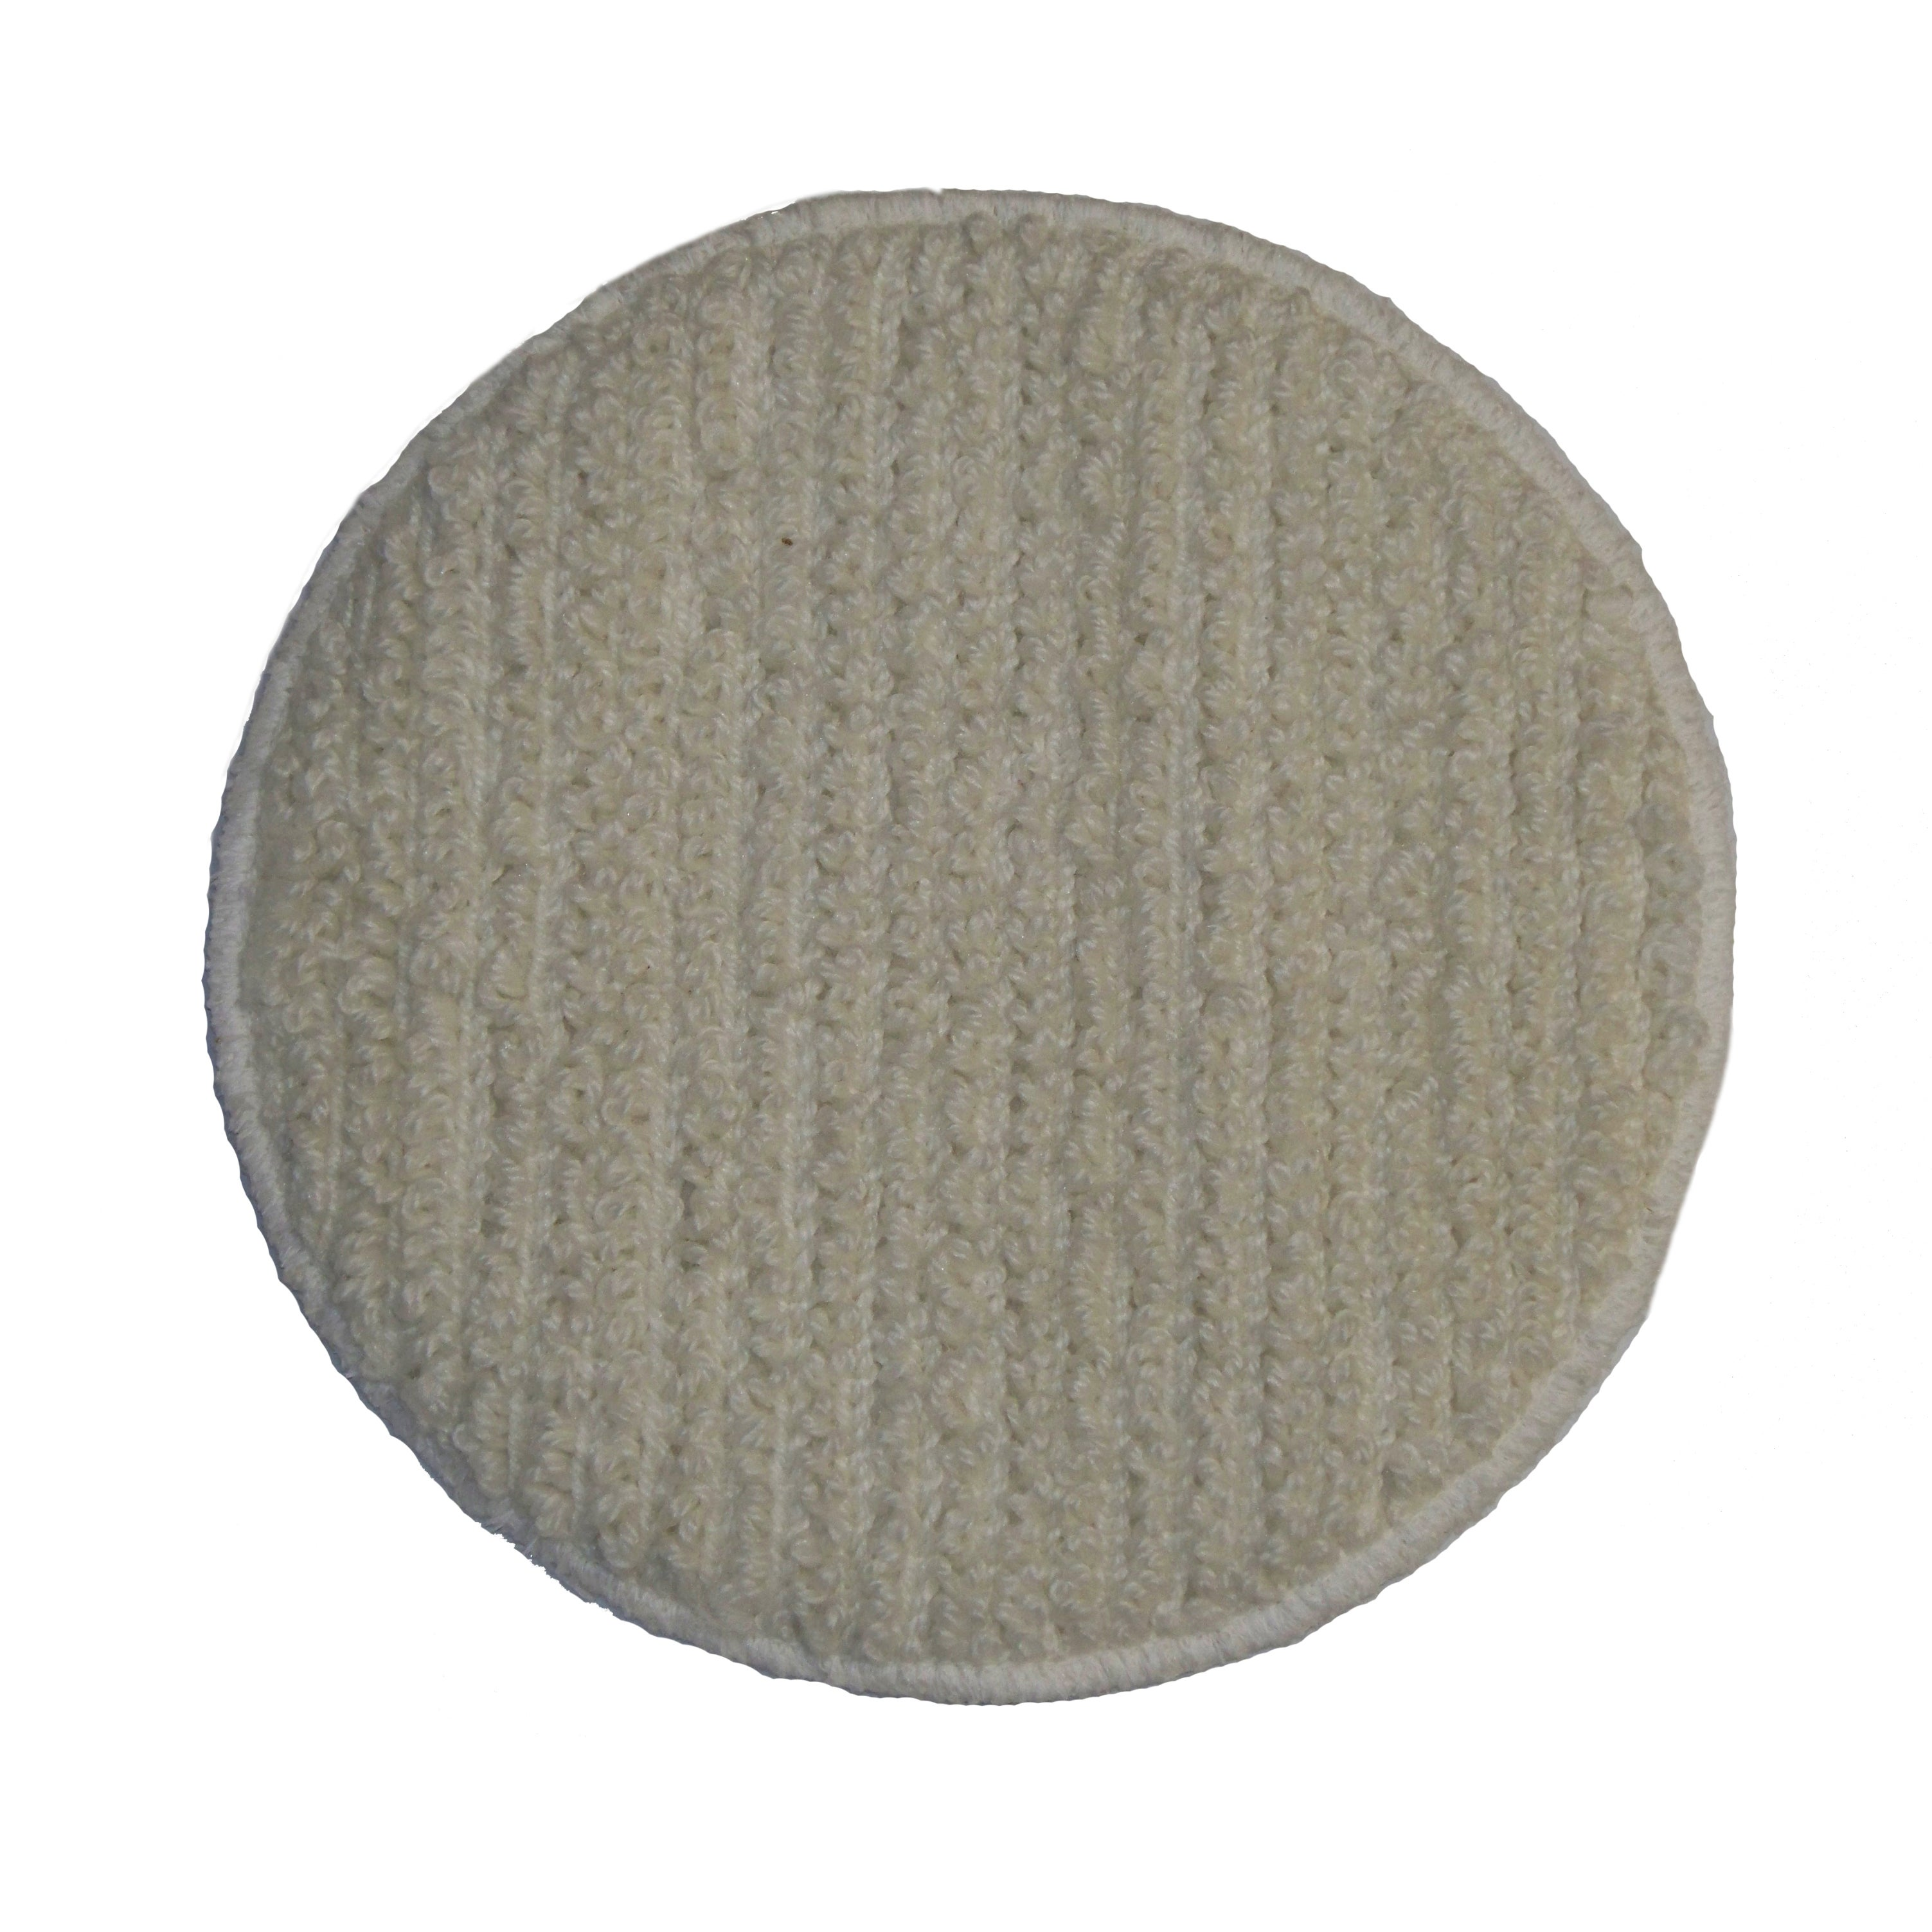 Oreck 12-Inch Terry Cloth Carpet Bonnet at Sears.com